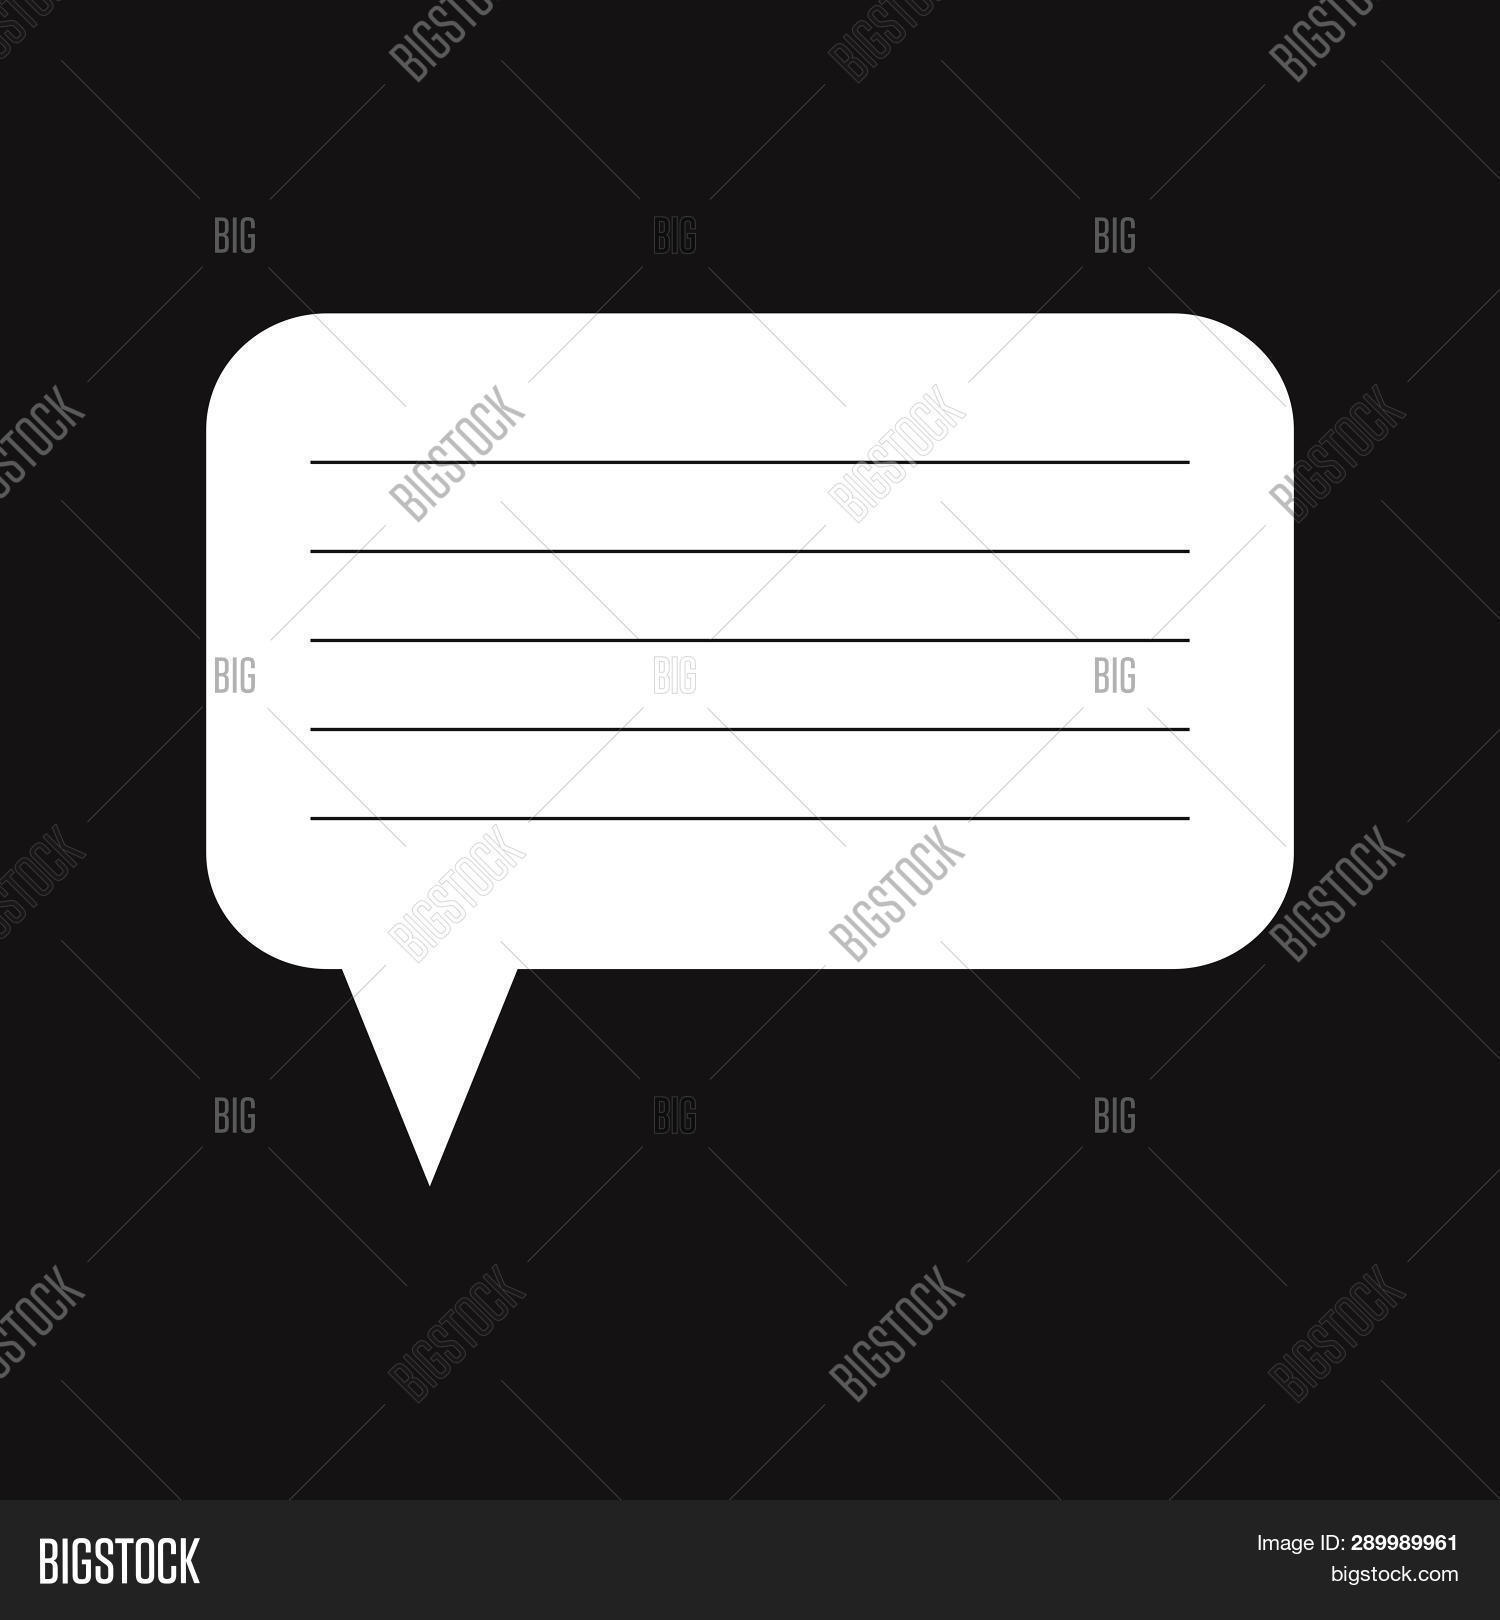 Speech Bubble Lines Vector & Photo (Free Trial) | Bigstock